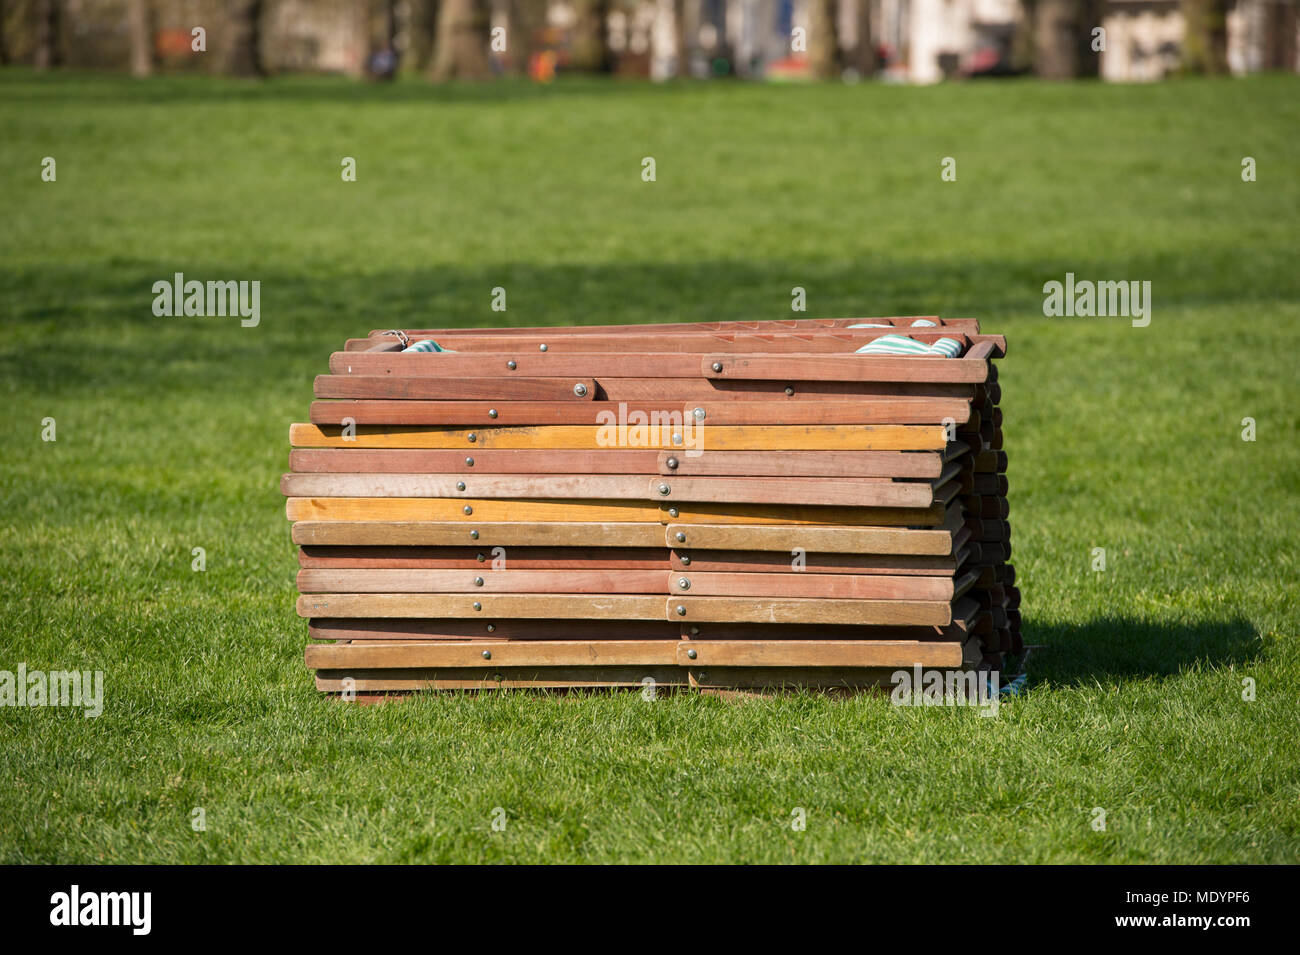 20 April 2018. Hot Spring weather in Green Park with stack of deckchairs, London, UK - Stock Image